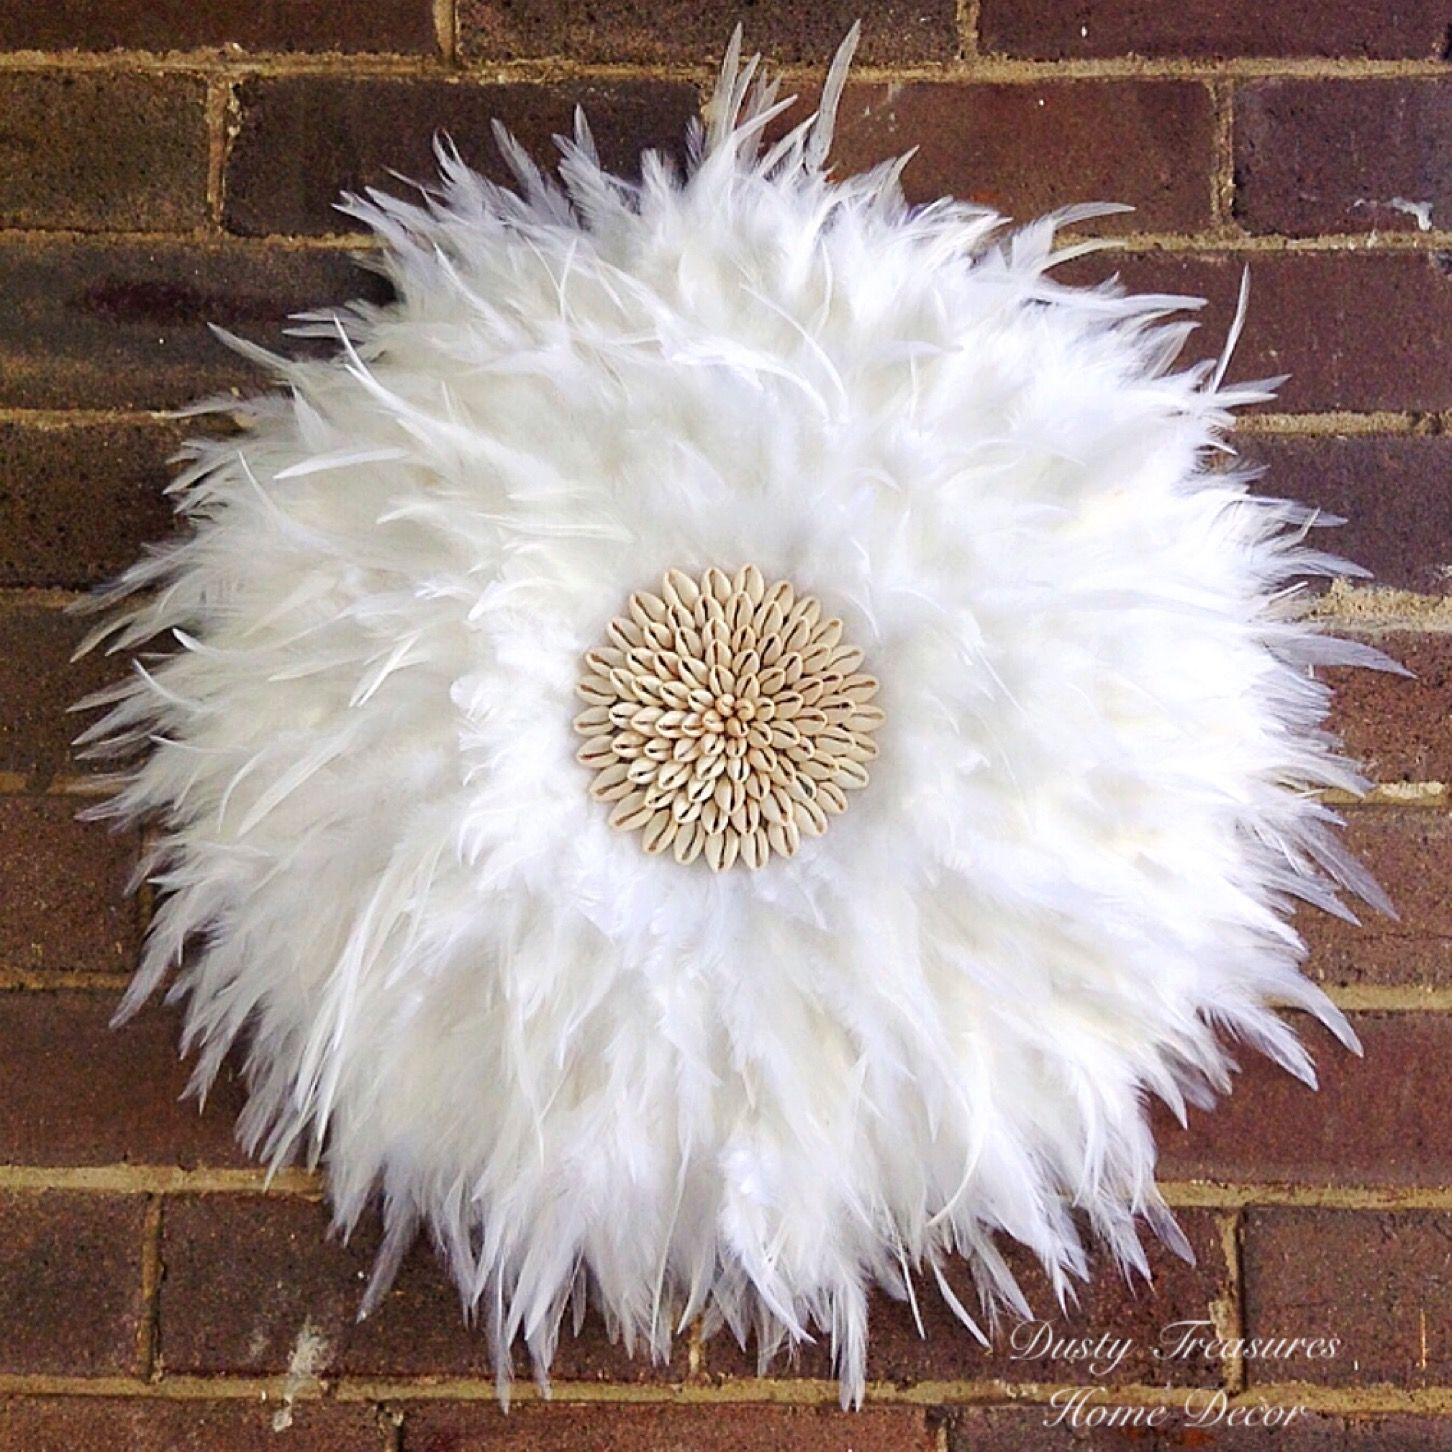 Pure White Real Feathers Juju Hat Wall Decor Designed And Hand Made By Dusty Treasures Home Decor Feather Wall Decor Feather Decor Juju Hat Decor